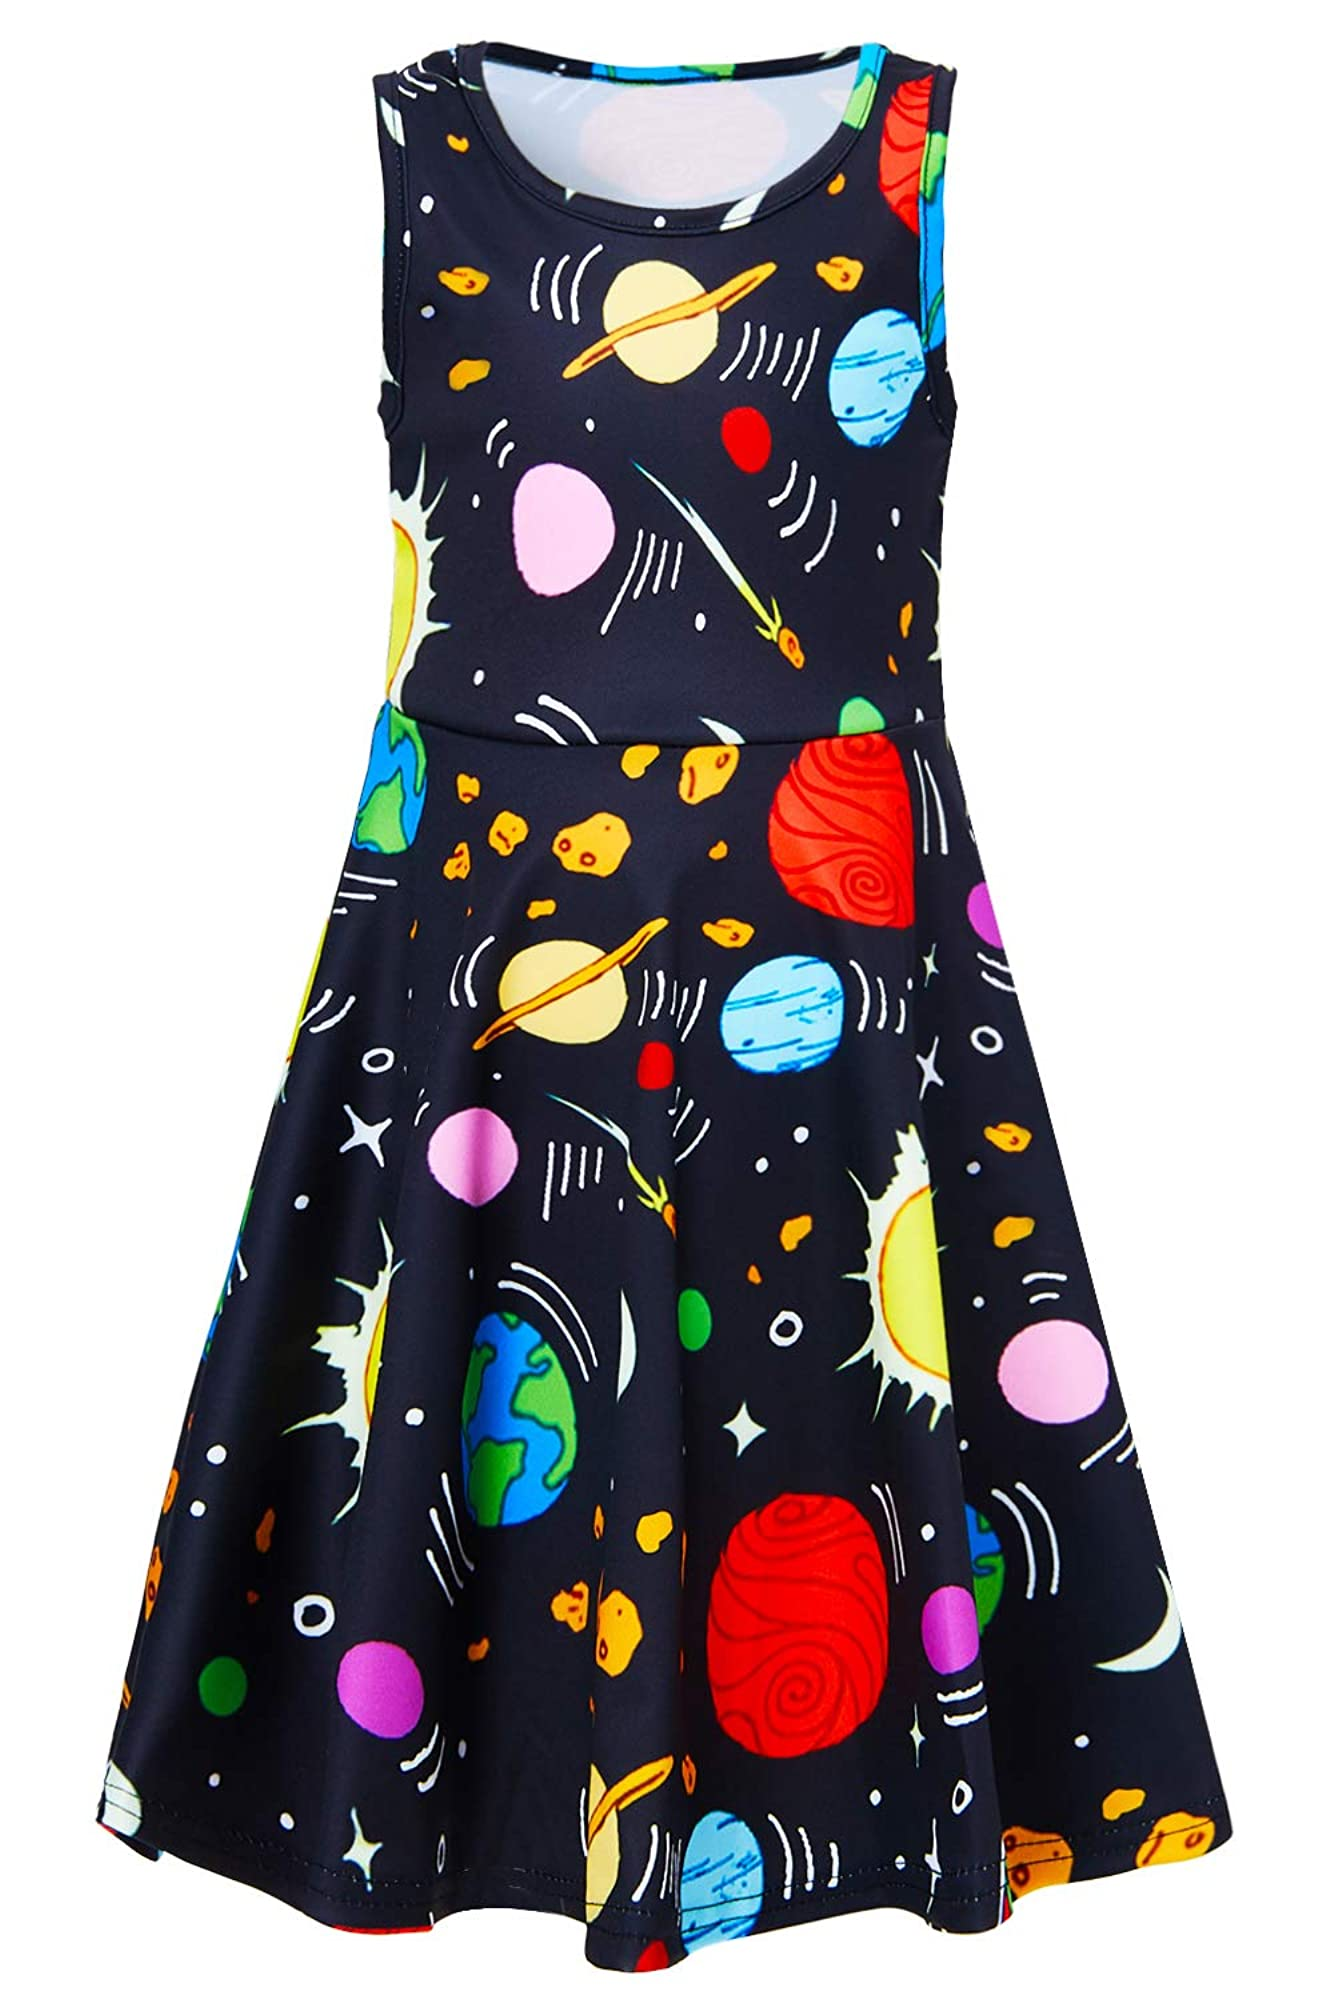 Casual One-Piece Sundress For Girls